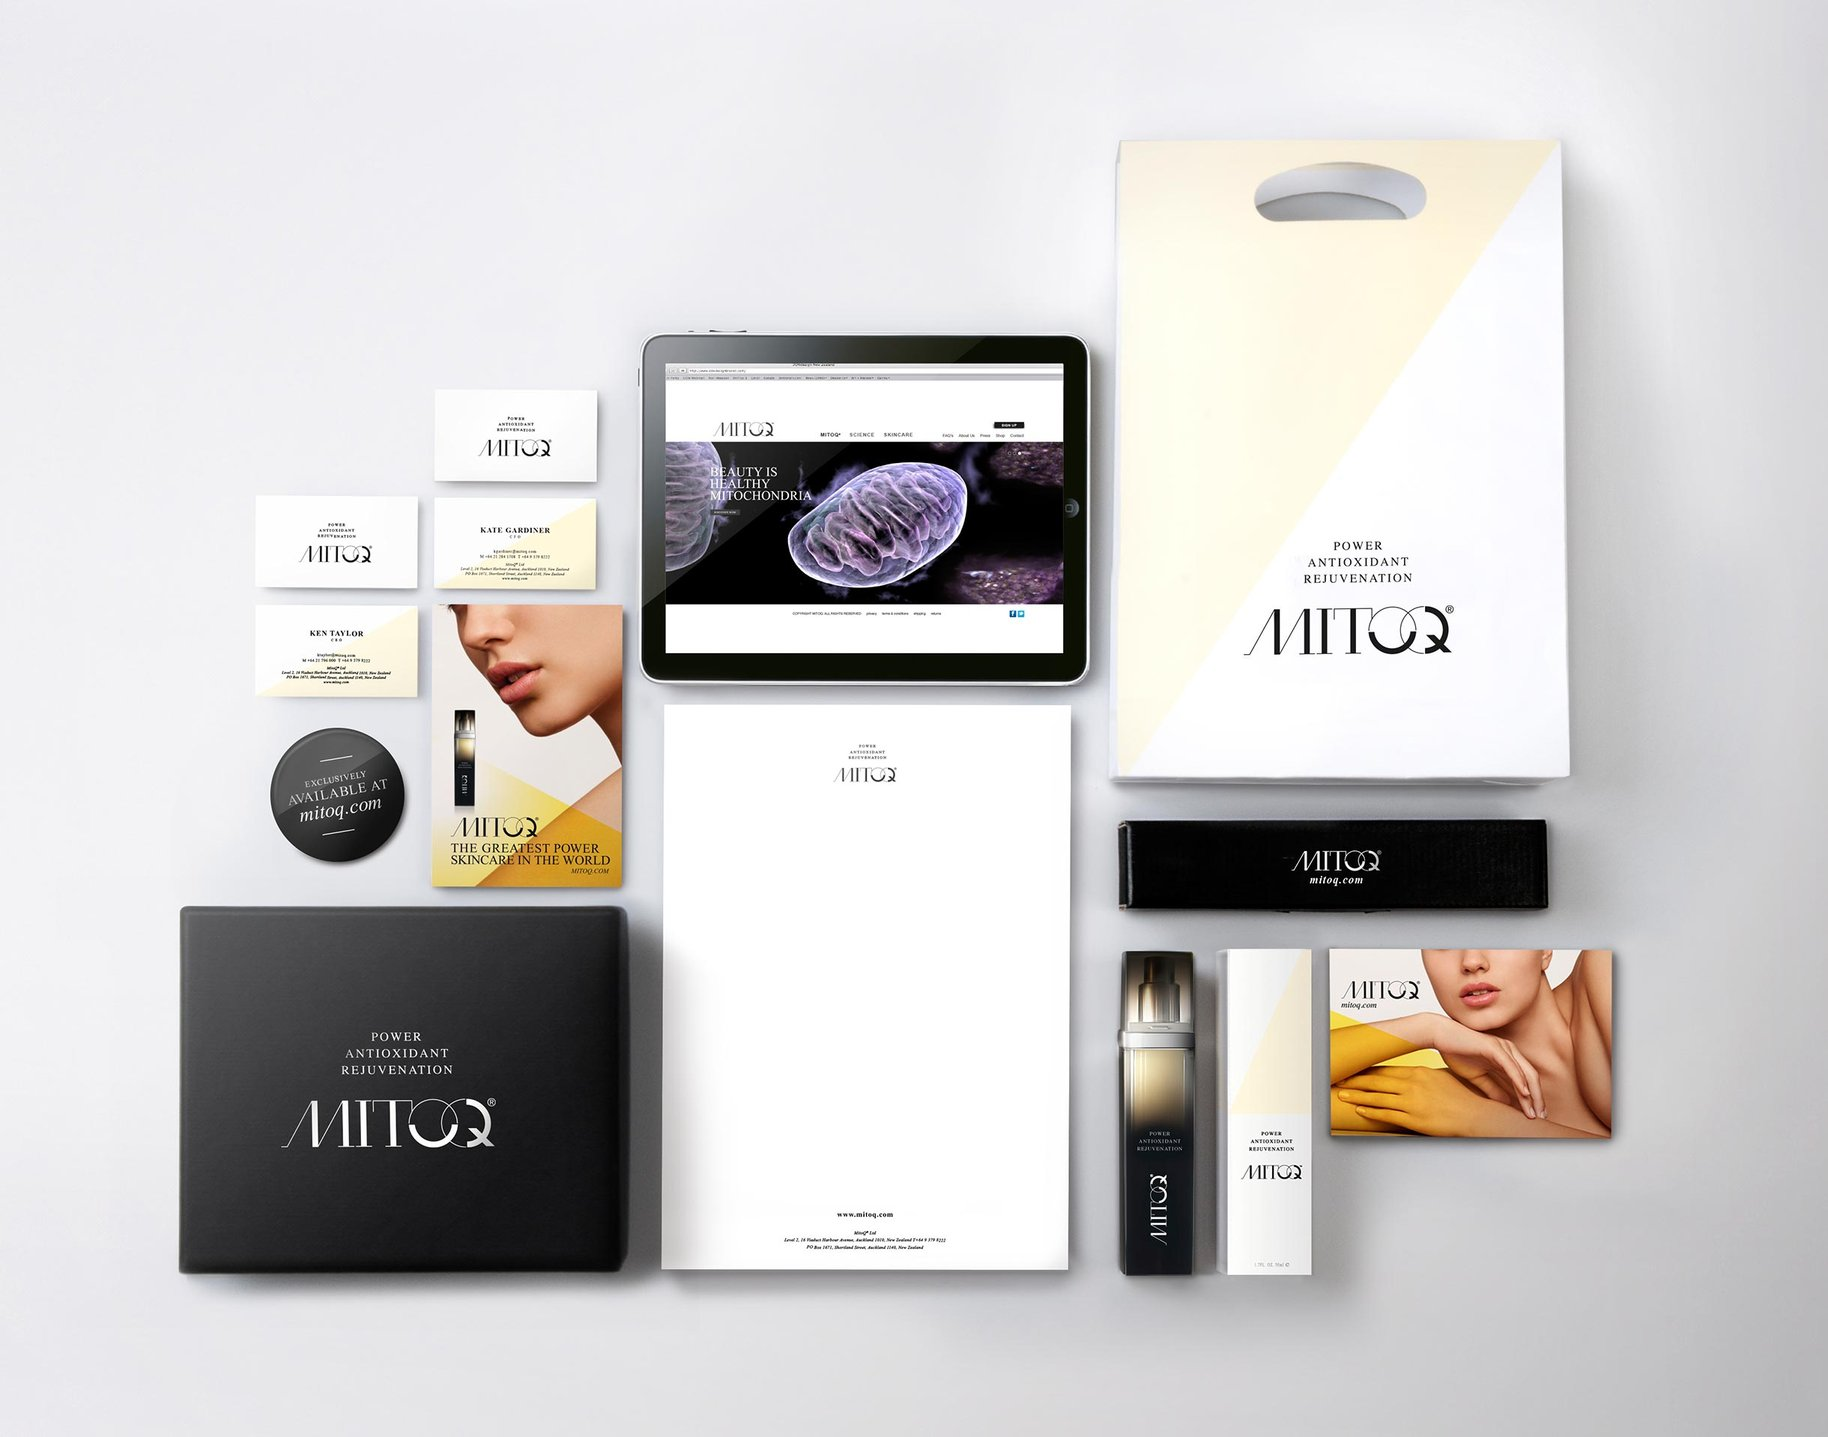 MitoQ brand collateral packaging website brand